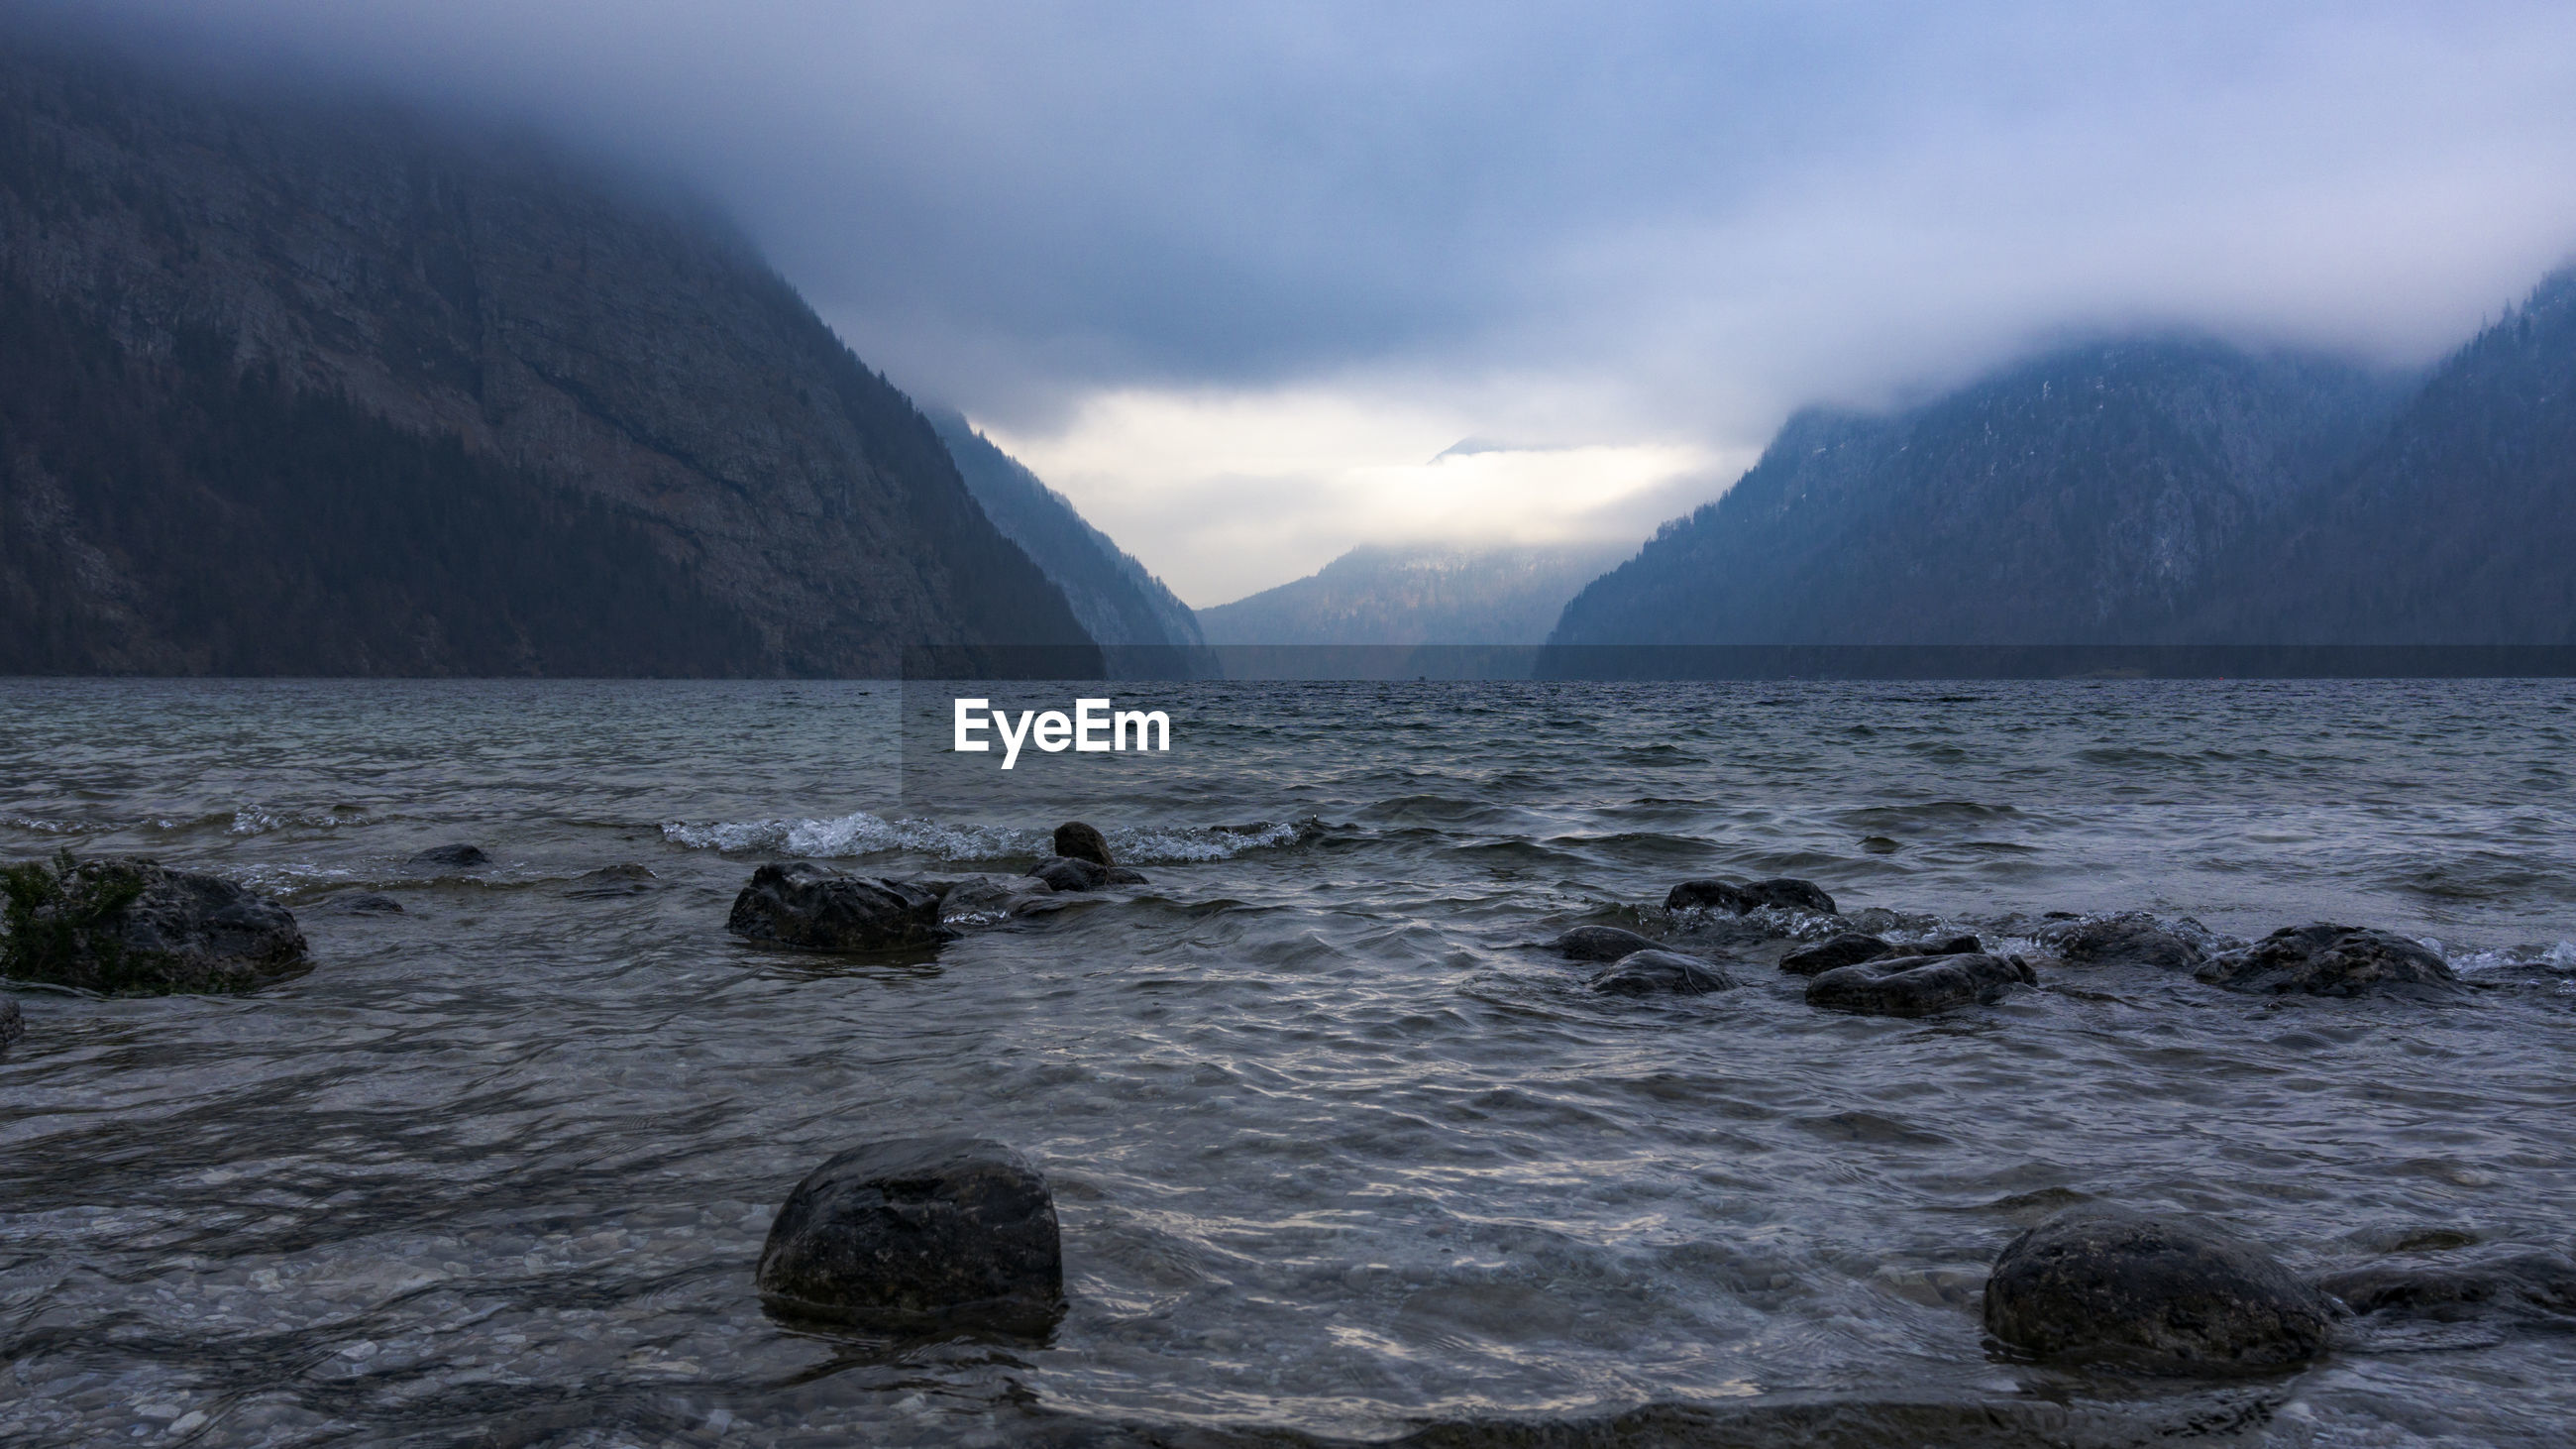 SCENIC VIEW OF ROCKS IN SEA AGAINST MOUNTAINS